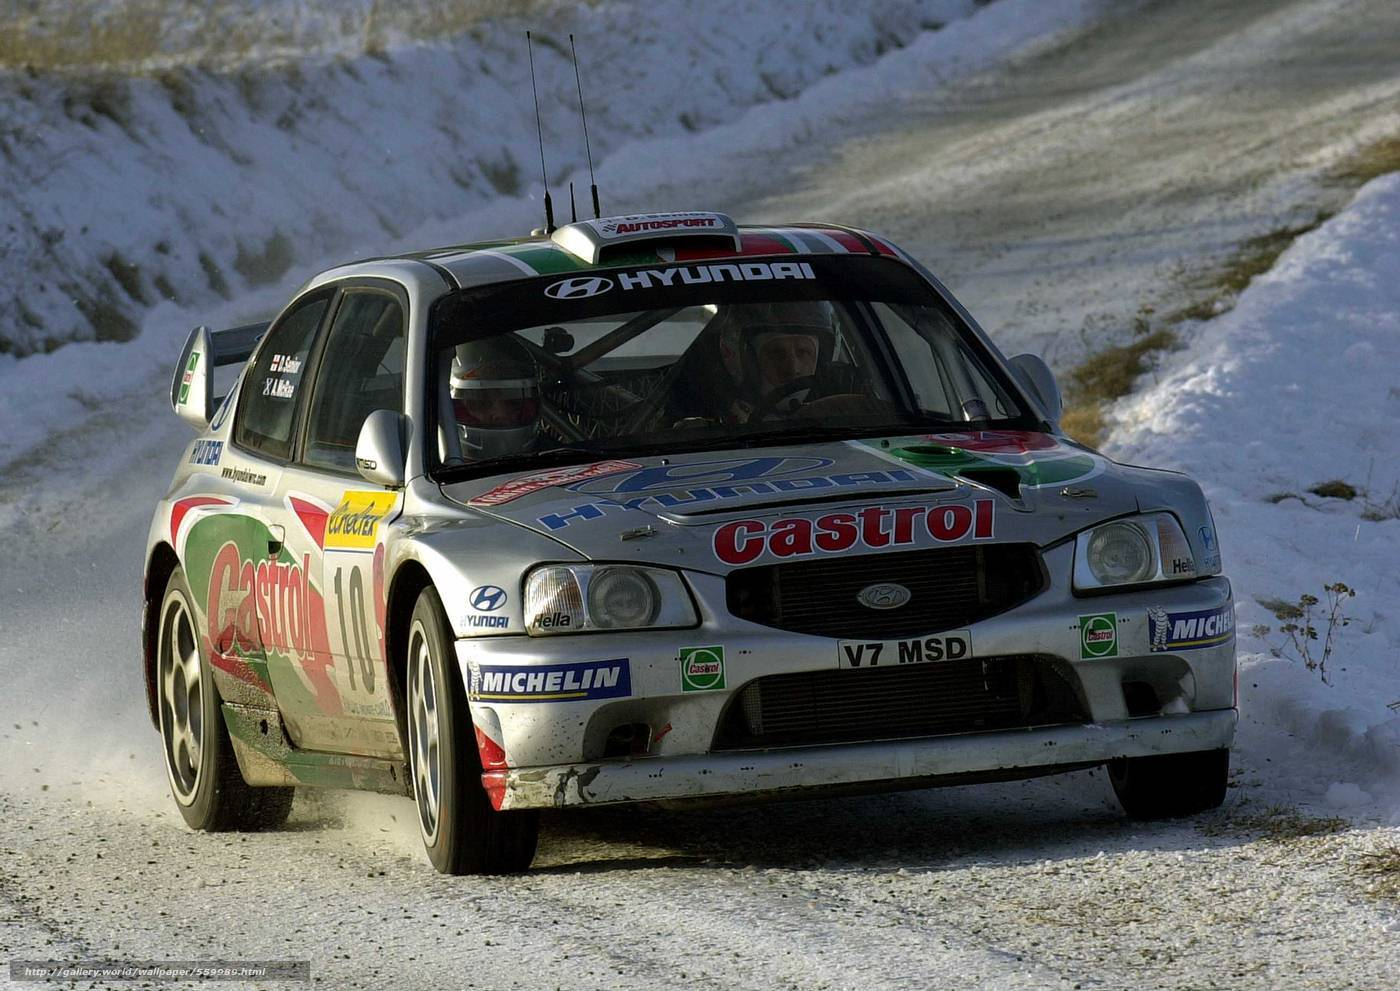 Download wallpaper wrc 2001 hyundai accent free desktop wallpaper in the resolution 1400x991 picture 559989